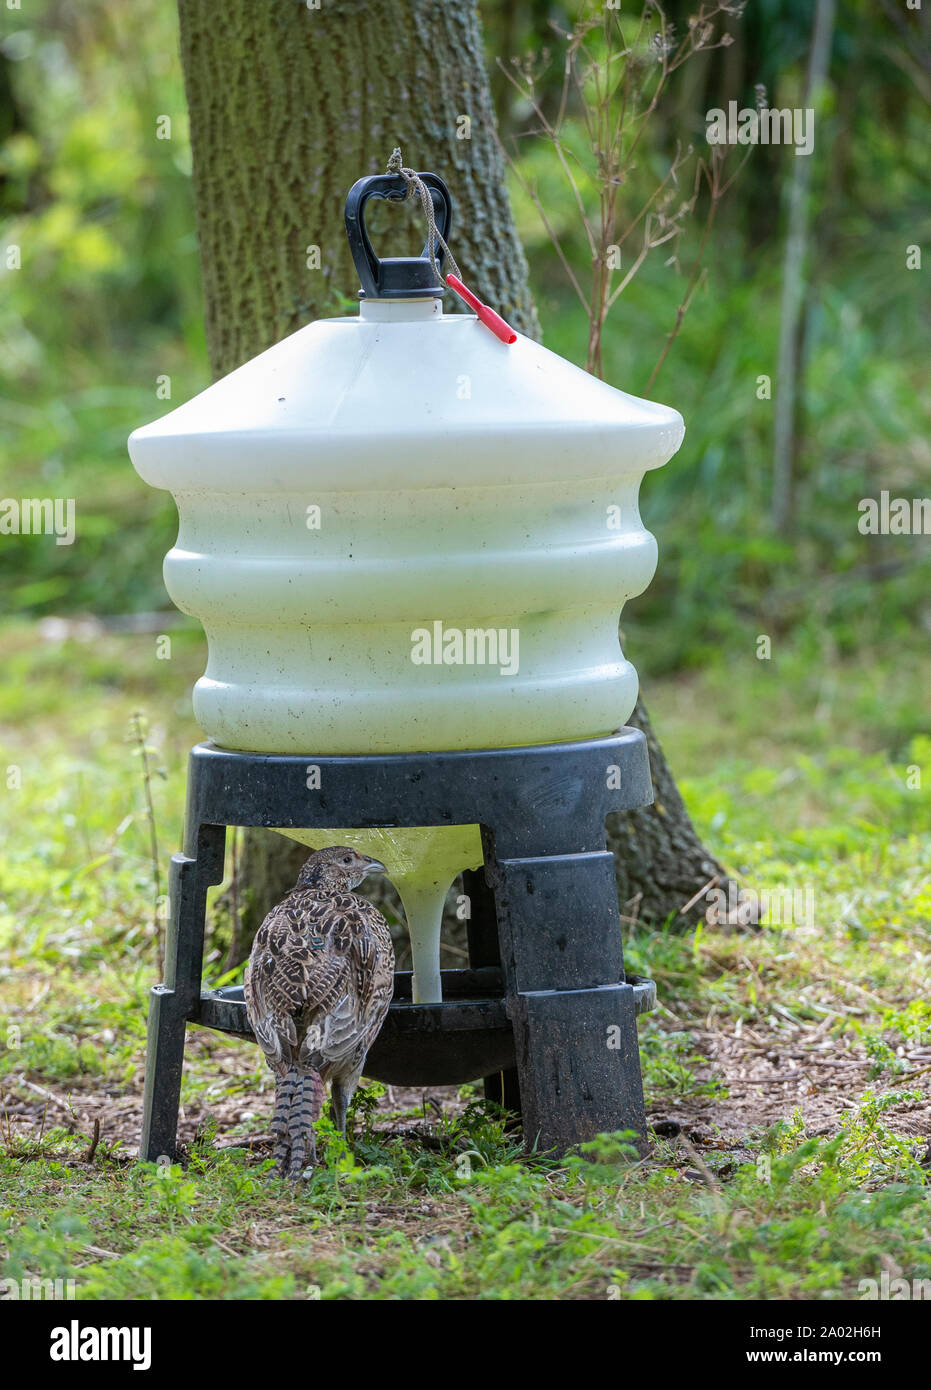 Ten week old pheasant chicks, (Phasianus colchicus) often known as poults, after being released into a gamekeepers release pen on an English estate Stock Photo